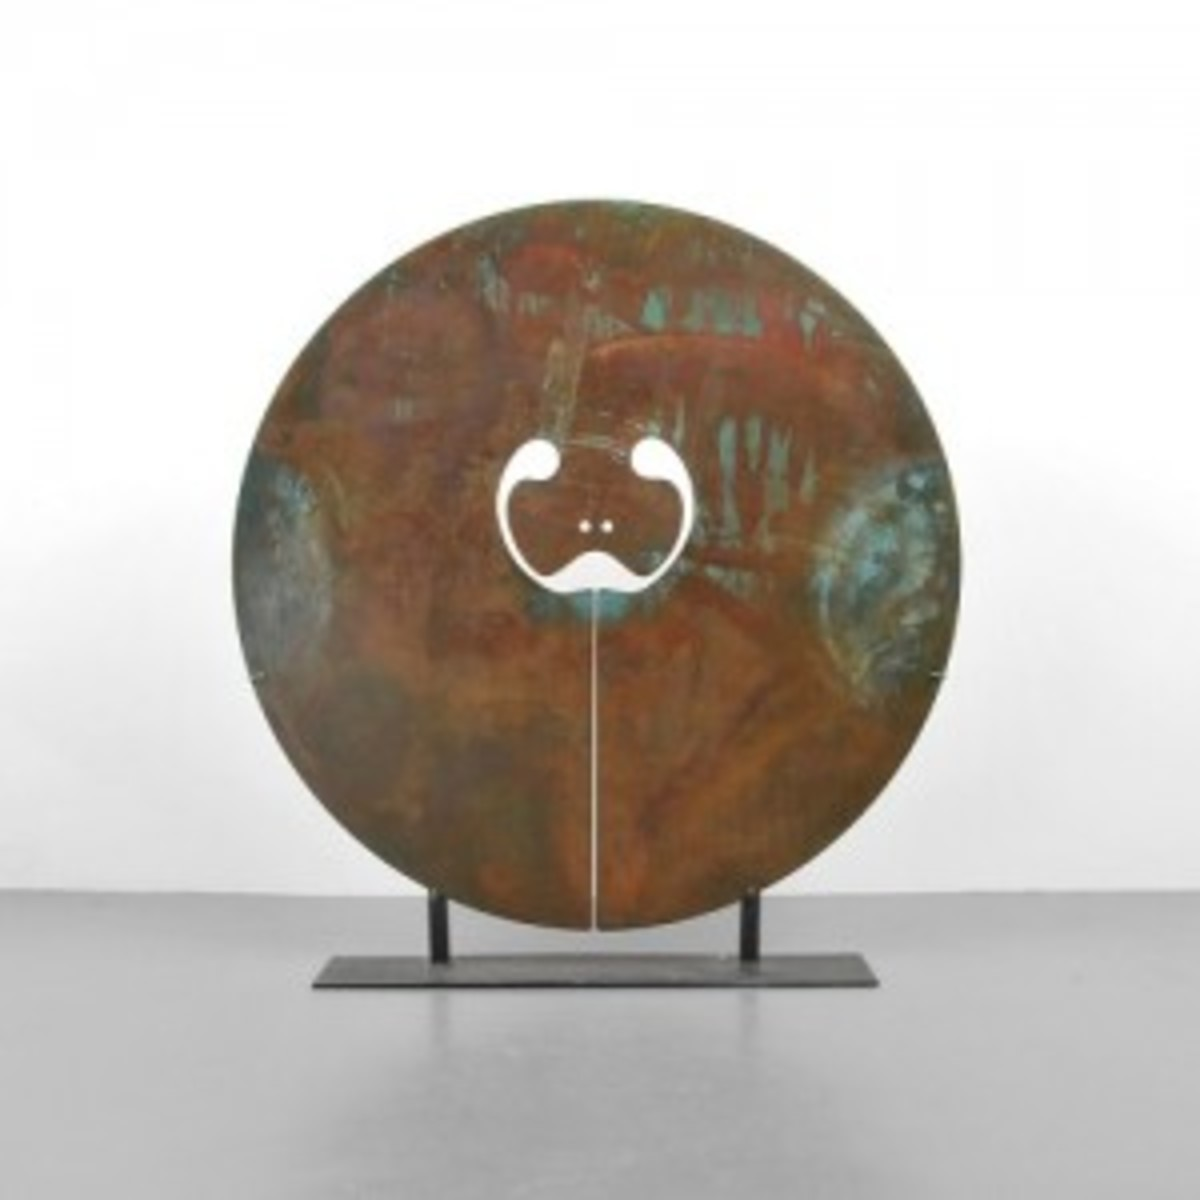 One of three important Harry Bertoia (American, 1915-1978) sculptures included in Nov. 1 auction, 'Split Gong,' bronze with applied patina, 1976, est. $60,000-$80,000. Palm Beach Modern Auctions image